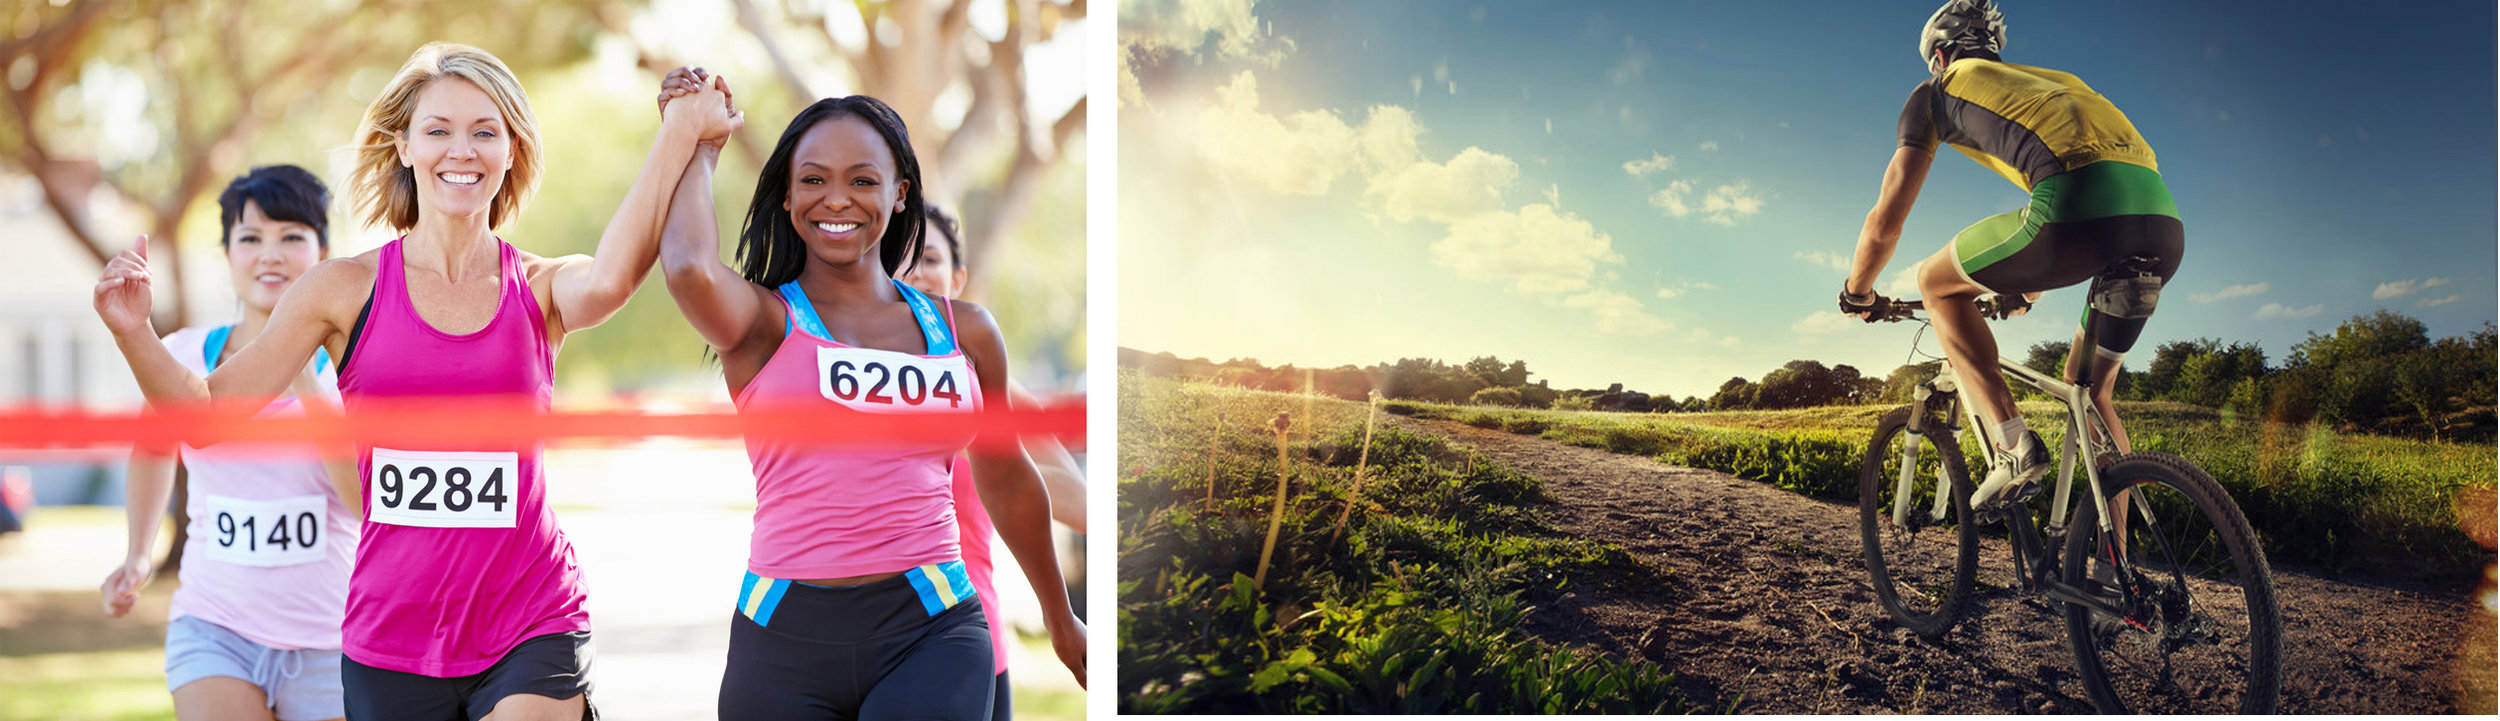 There are numerous scientific publications emphasizing the importance of Nrf2 for muscle and joint health as well as healthy metabolism for better energy. Latarum® fills a void in typical modern diets by providing a key Nrf2 activator that restores Nrf2 function  (see:  Supporting Science ).